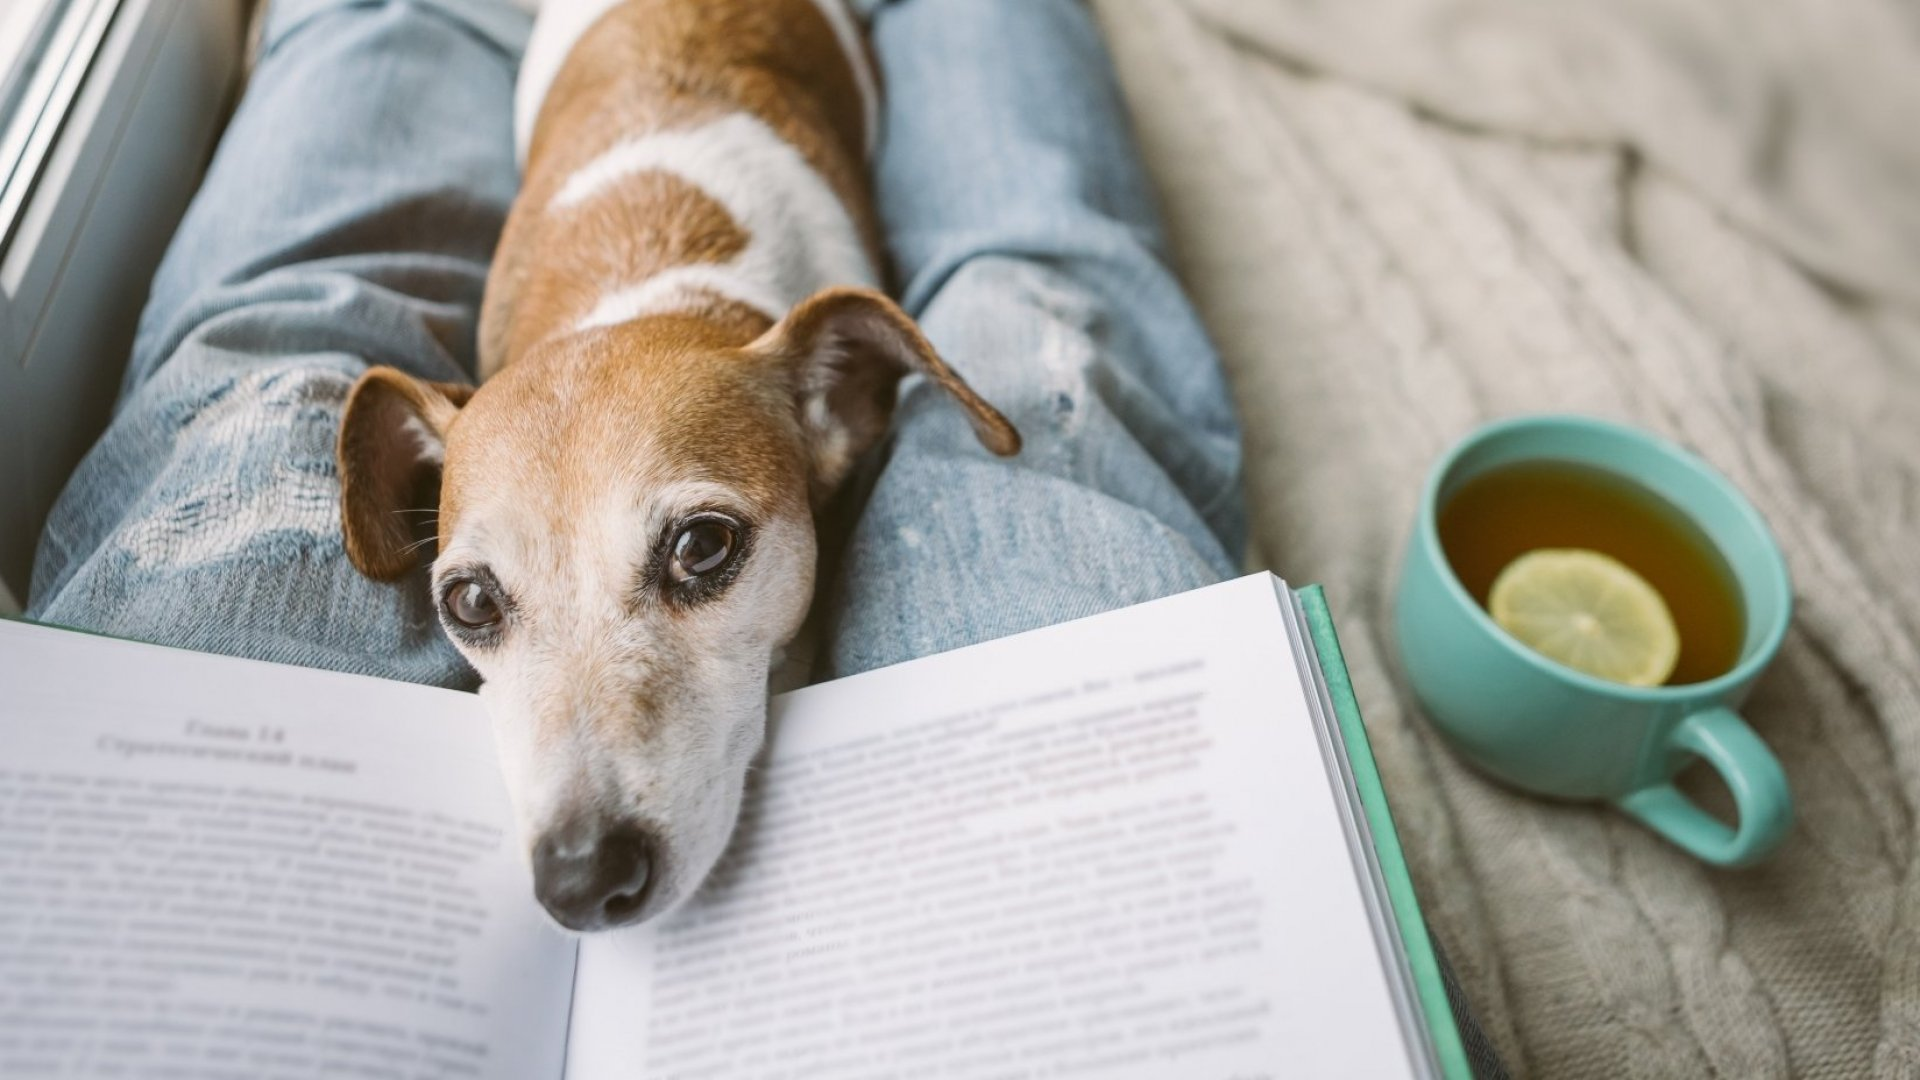 5 Books to Read If You're Stuck at Home Thanks to Coronavirus